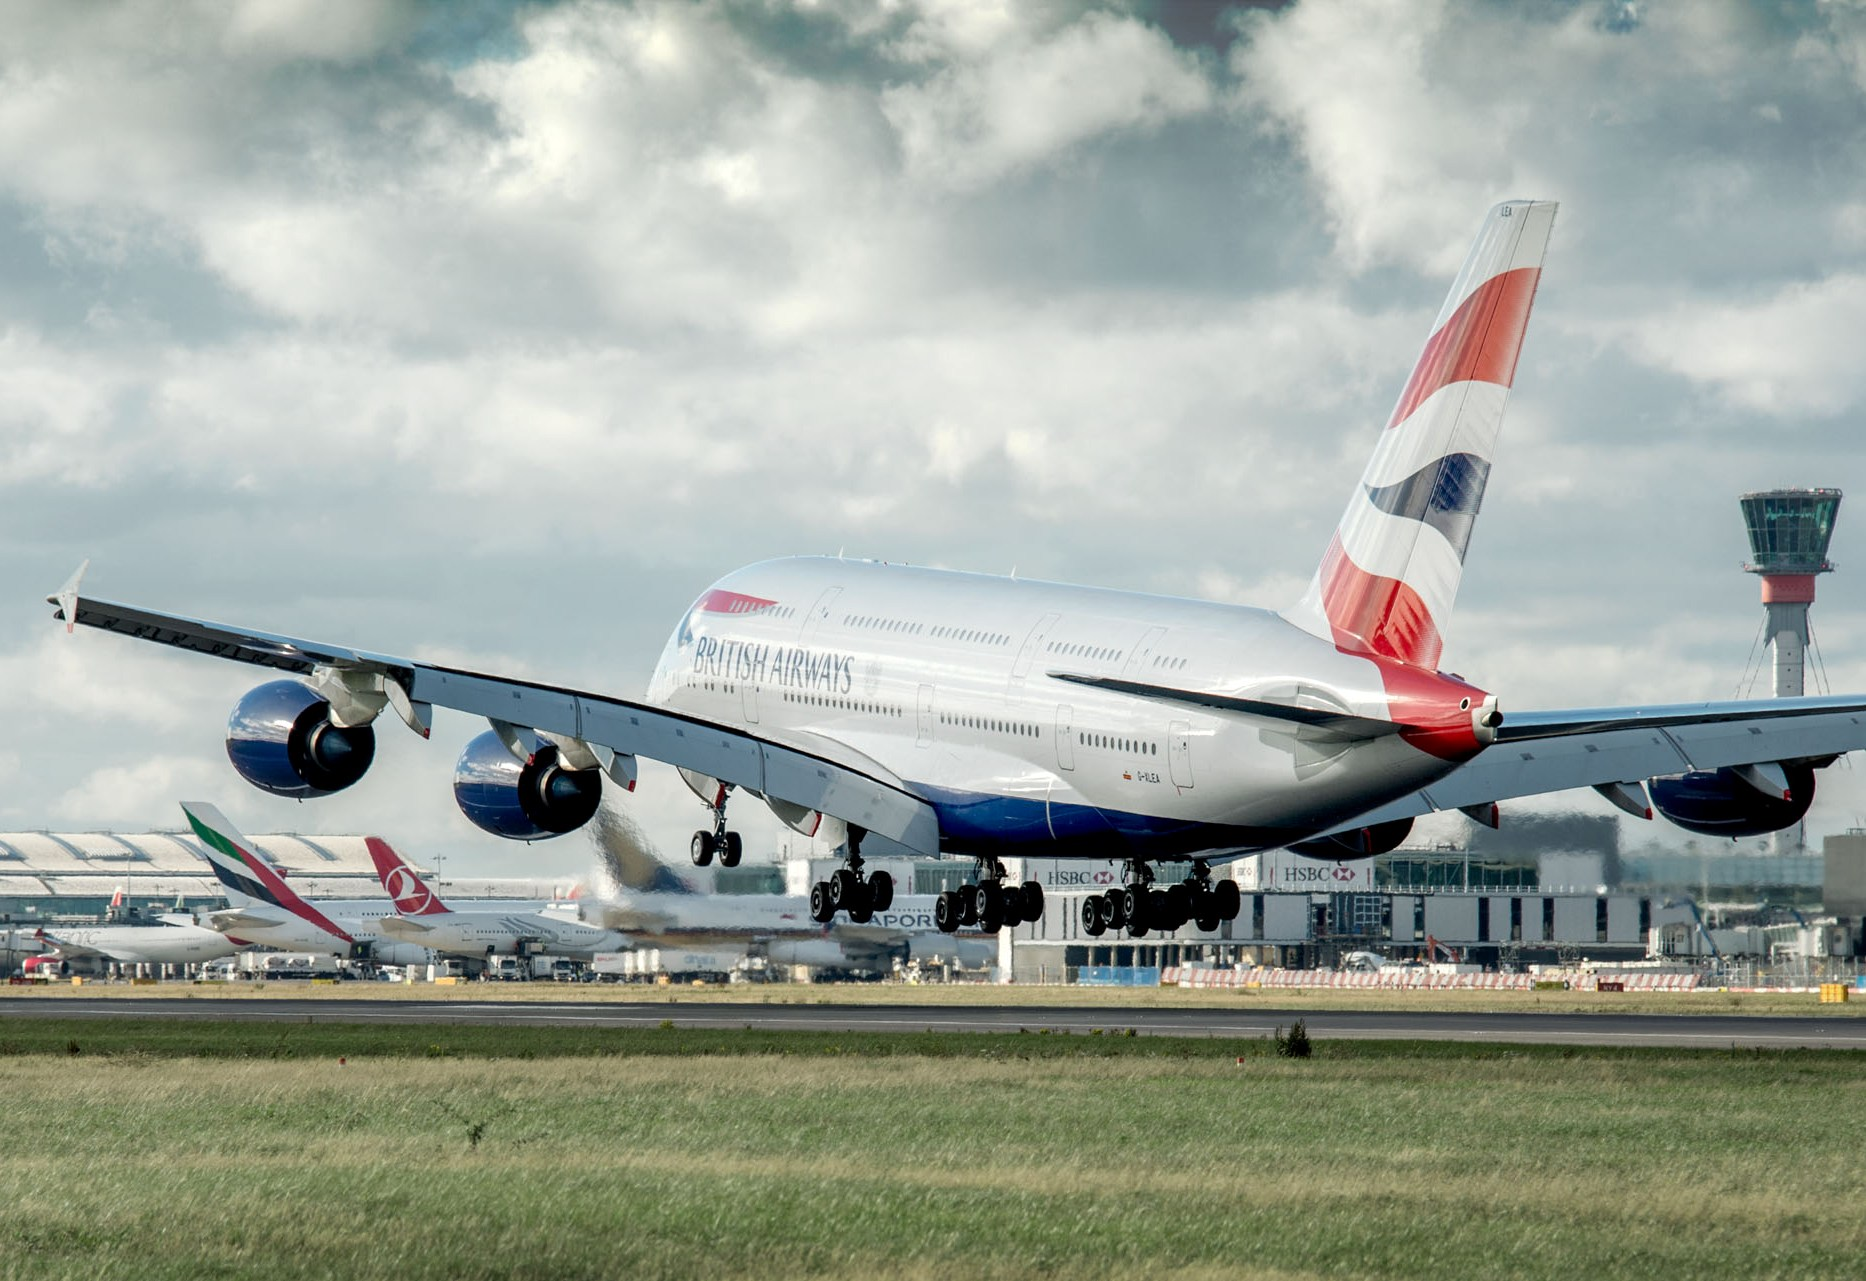 Flyselskaberne tjener rigtig mange penge på deres såkaldte guldruter, som de også trafikerer mange gange om dagen. Her lander British Airways i London Heathrow. Foto: London Heathrow.